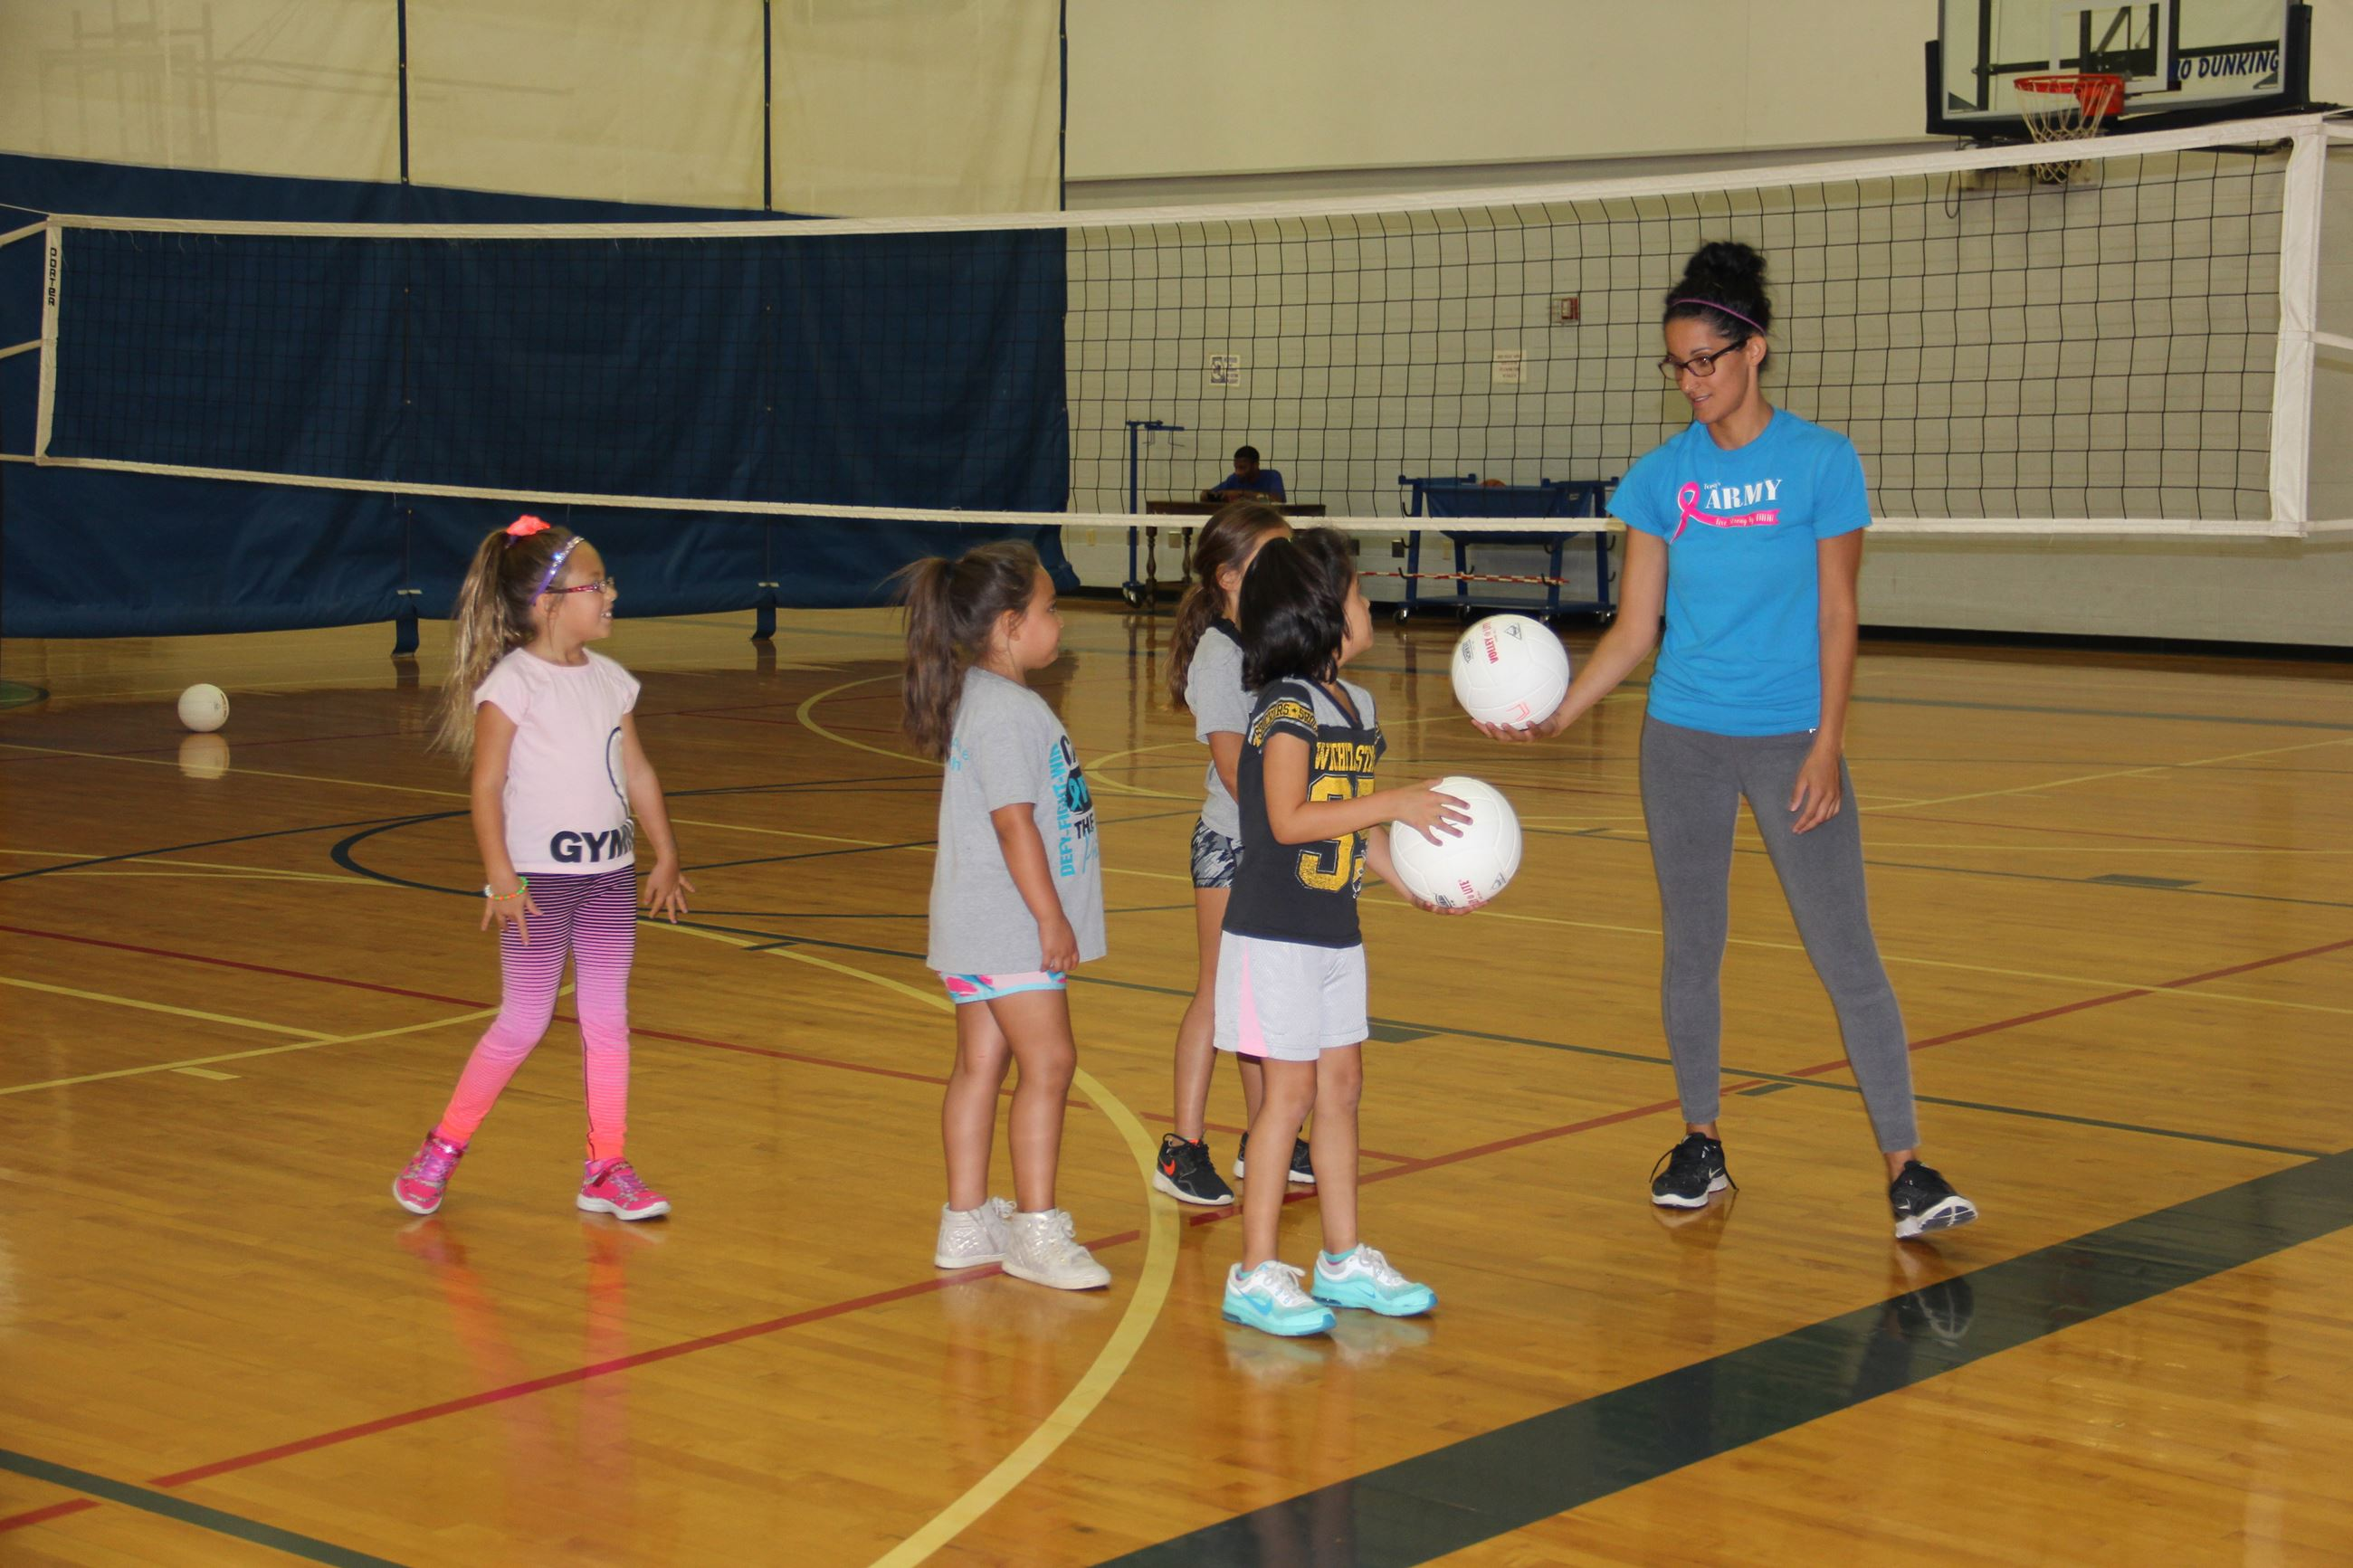 Youth Volleyball - girls practice serving